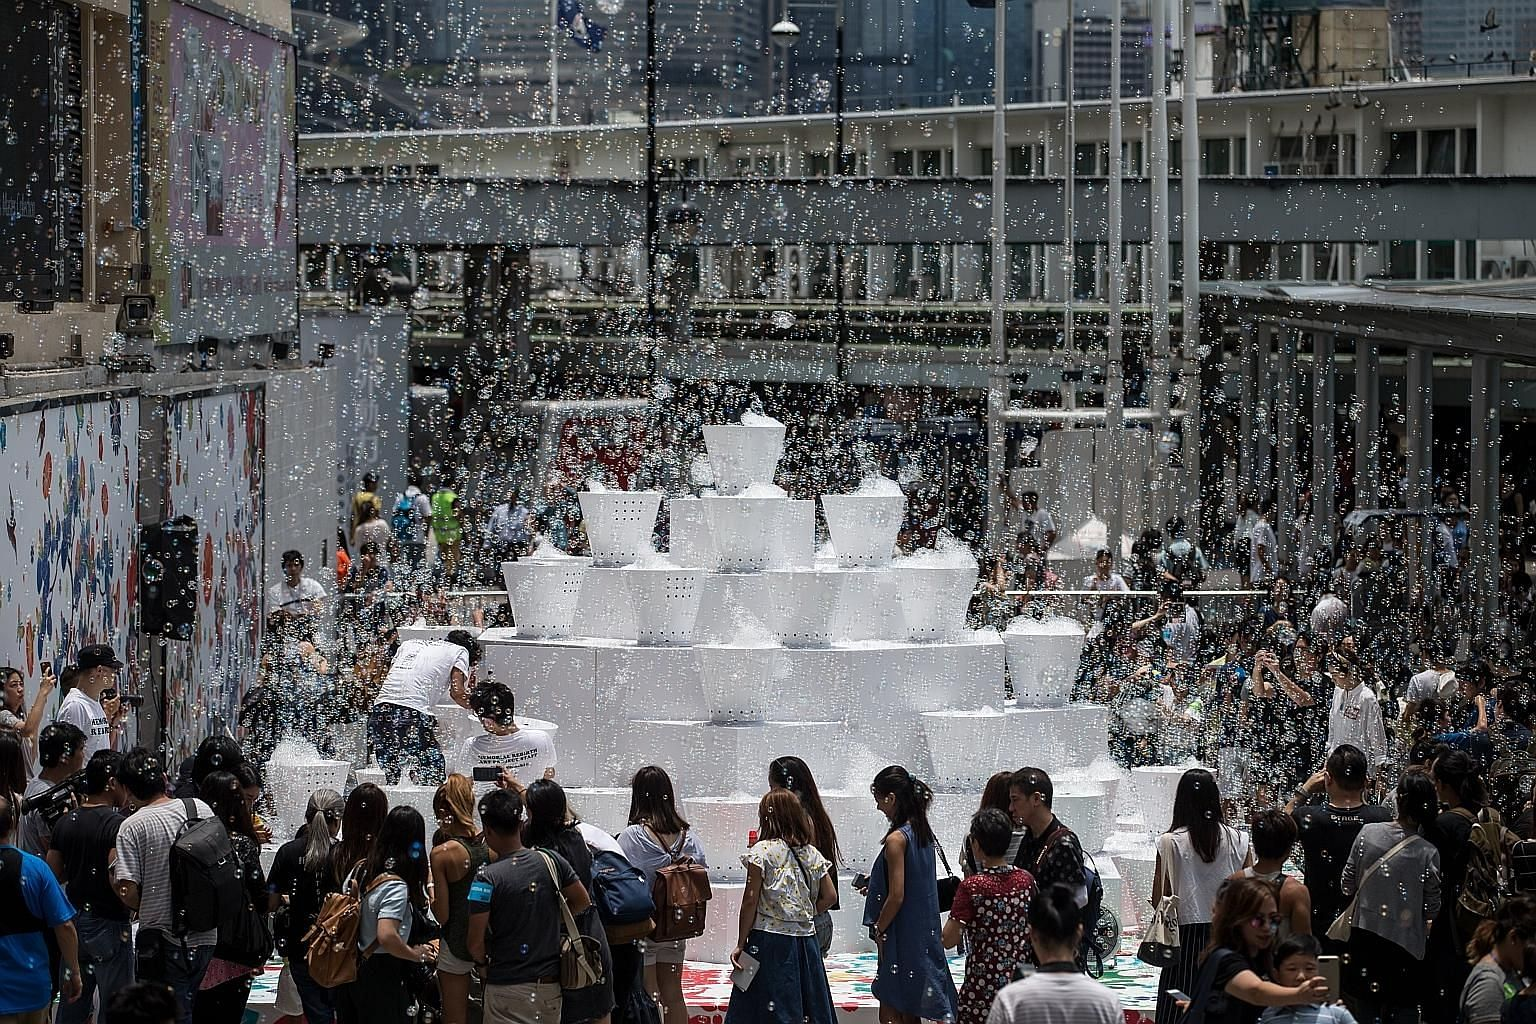 Guests and passers-by are thrilled at the sight of soap bubbles rising in the air during the showcase of an art installation outside Harbour City in Hong Kong yesterday. The art installation, titled Bubble Up, is designed by Japanese artist Shinji Oh